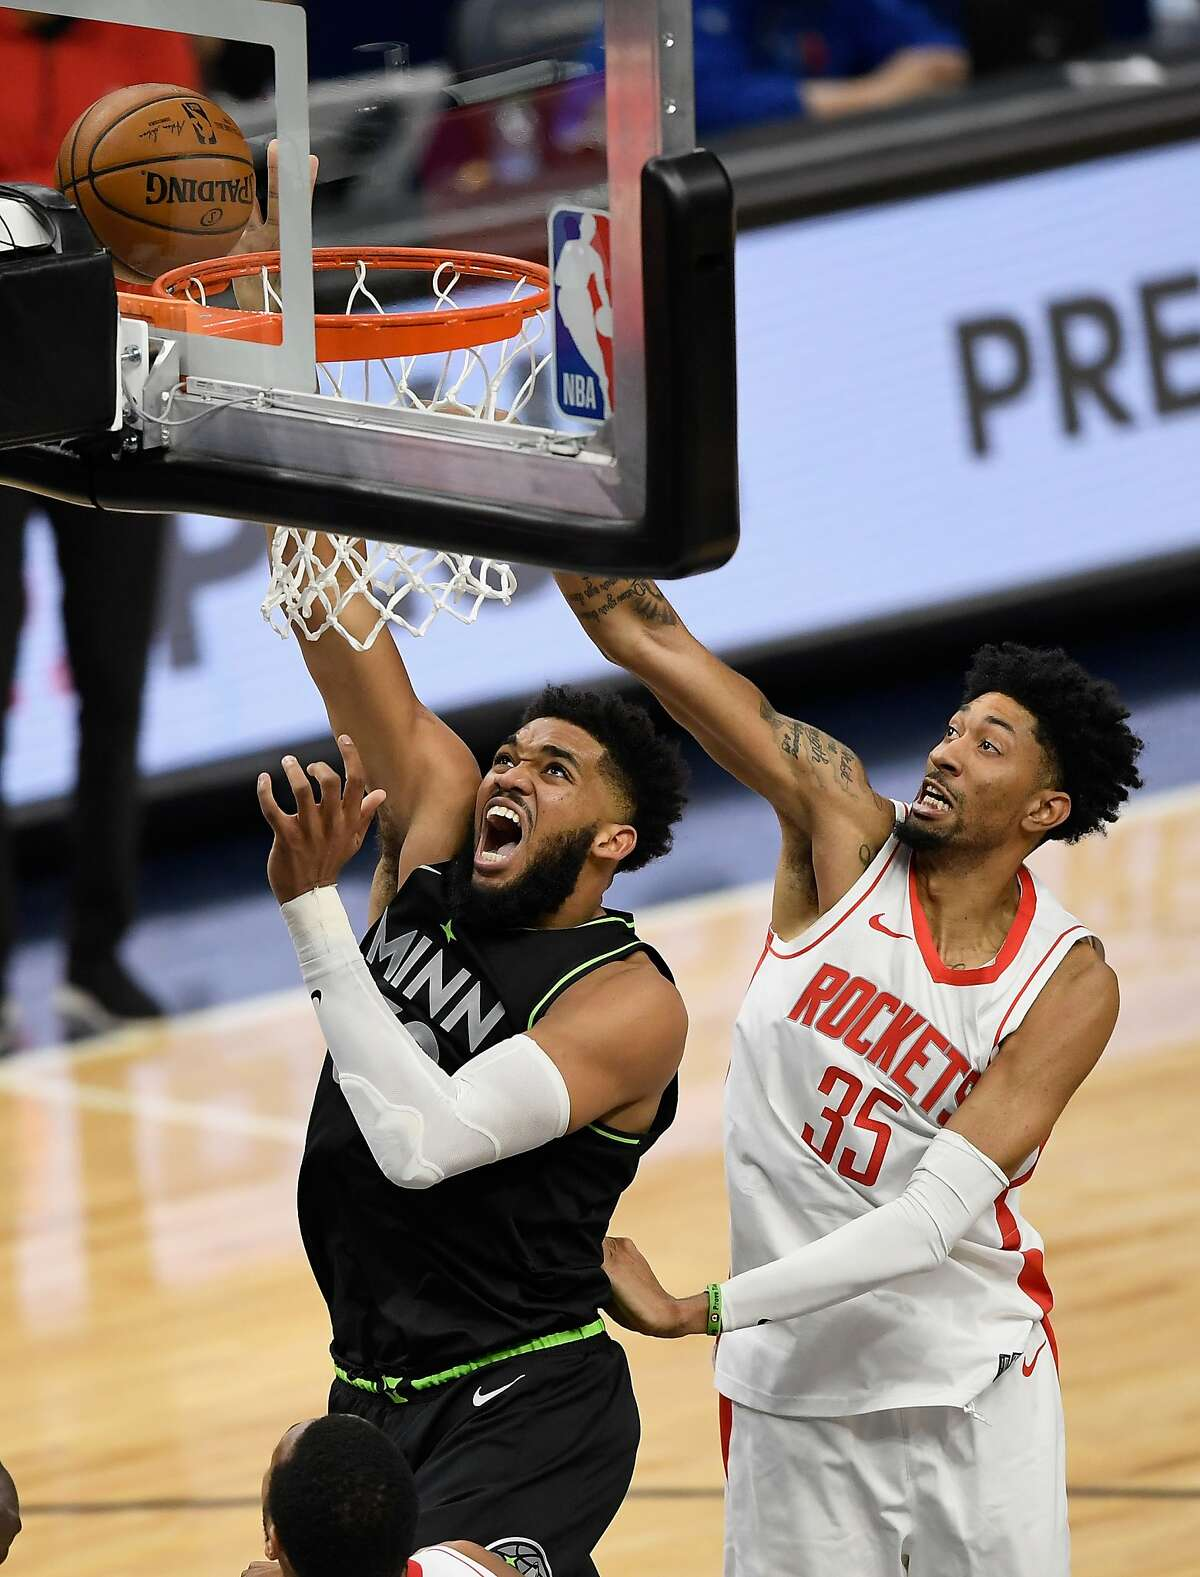 Karl-Anthony Towns, who scored 29 points, gets off a shot as the Rockets' Christian Wood defends.